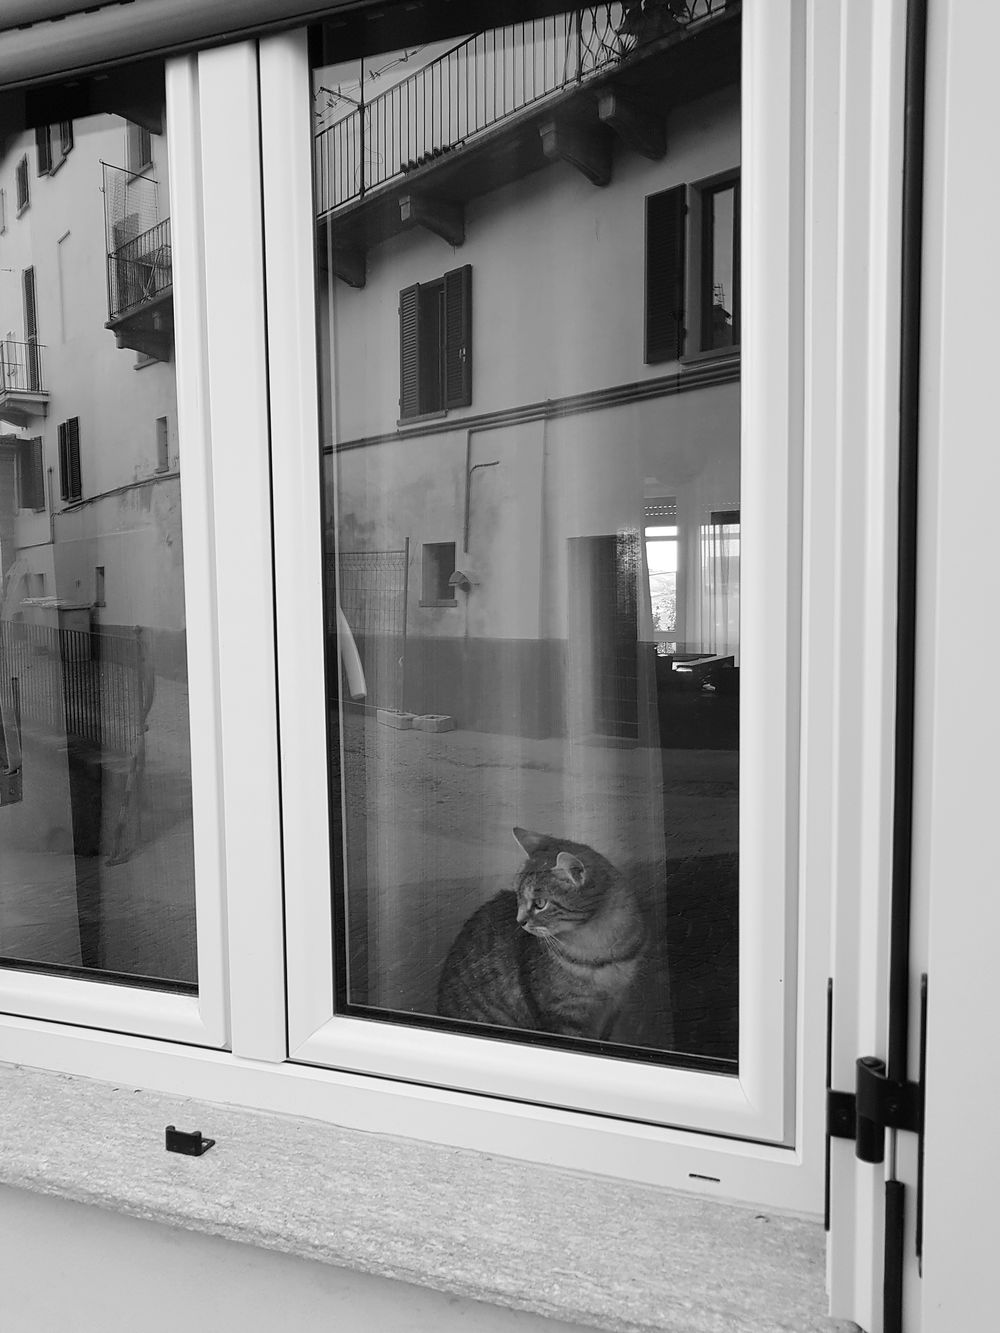 Cat At Window Reflection In The Street Langhe Tranquility EyeEm Selects Window Built Structure Architecture Building Exterior Day Old-fashioned No People Close-up